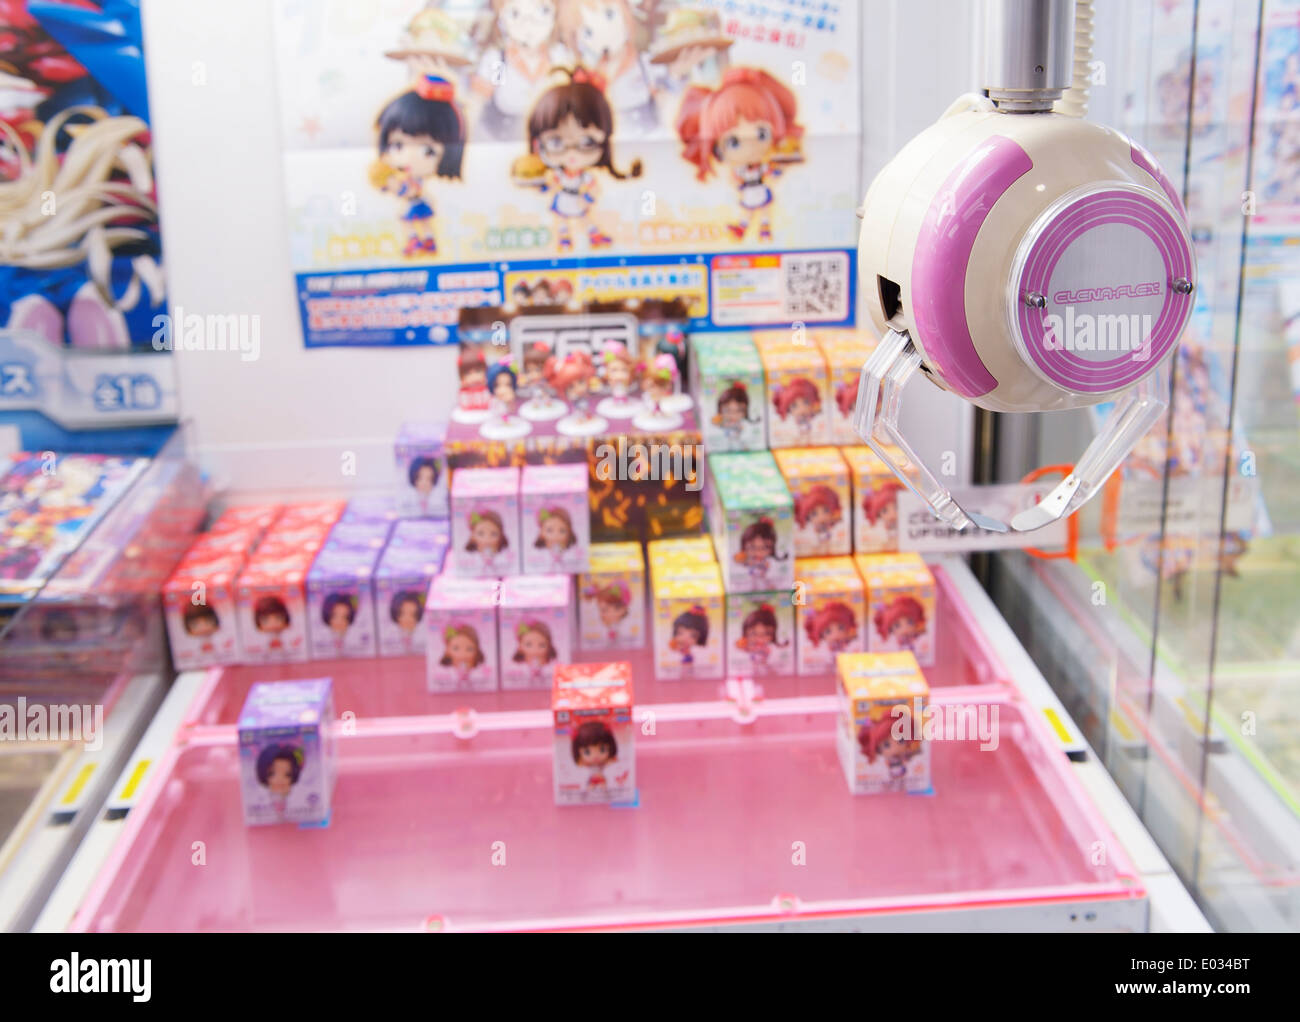 Clena-flex claw catcher crane machine at arcade in Tokyo, Japan - Stock Image